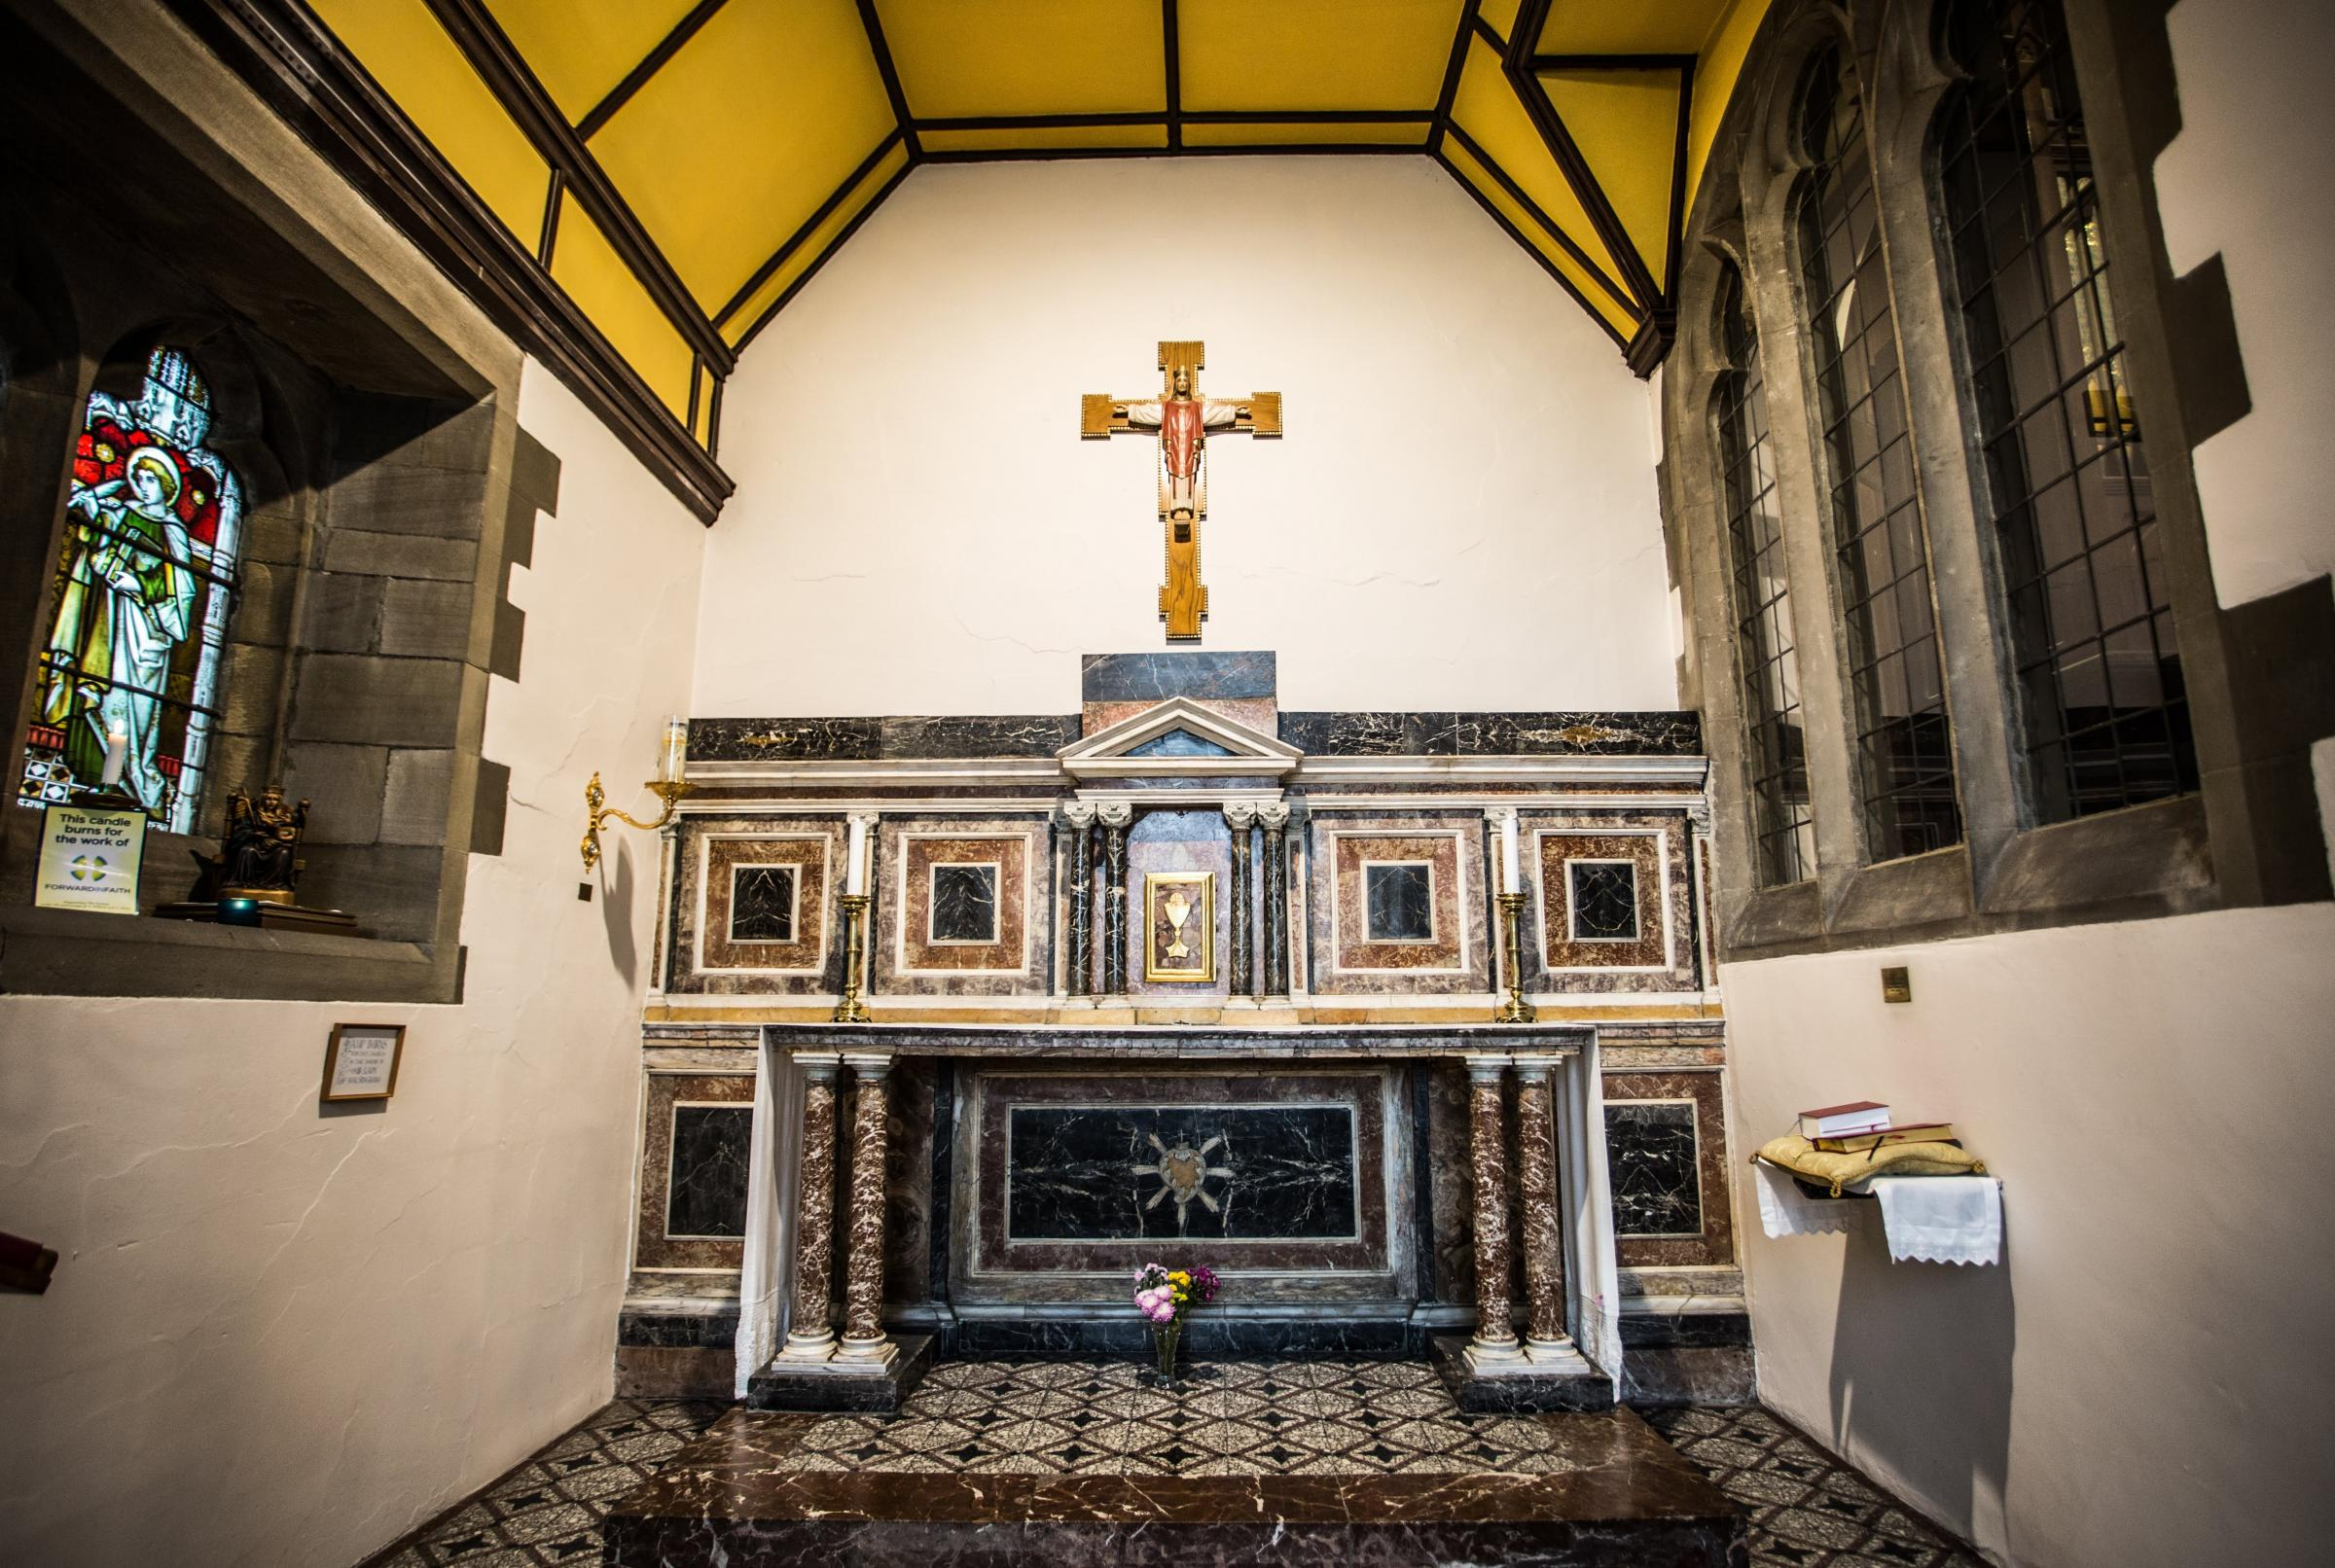 SPANISH ALTAR: Have we found an appropriate theory to explain why this 17th Century Spanish altar is in a 19th Century church in Spennymoor?